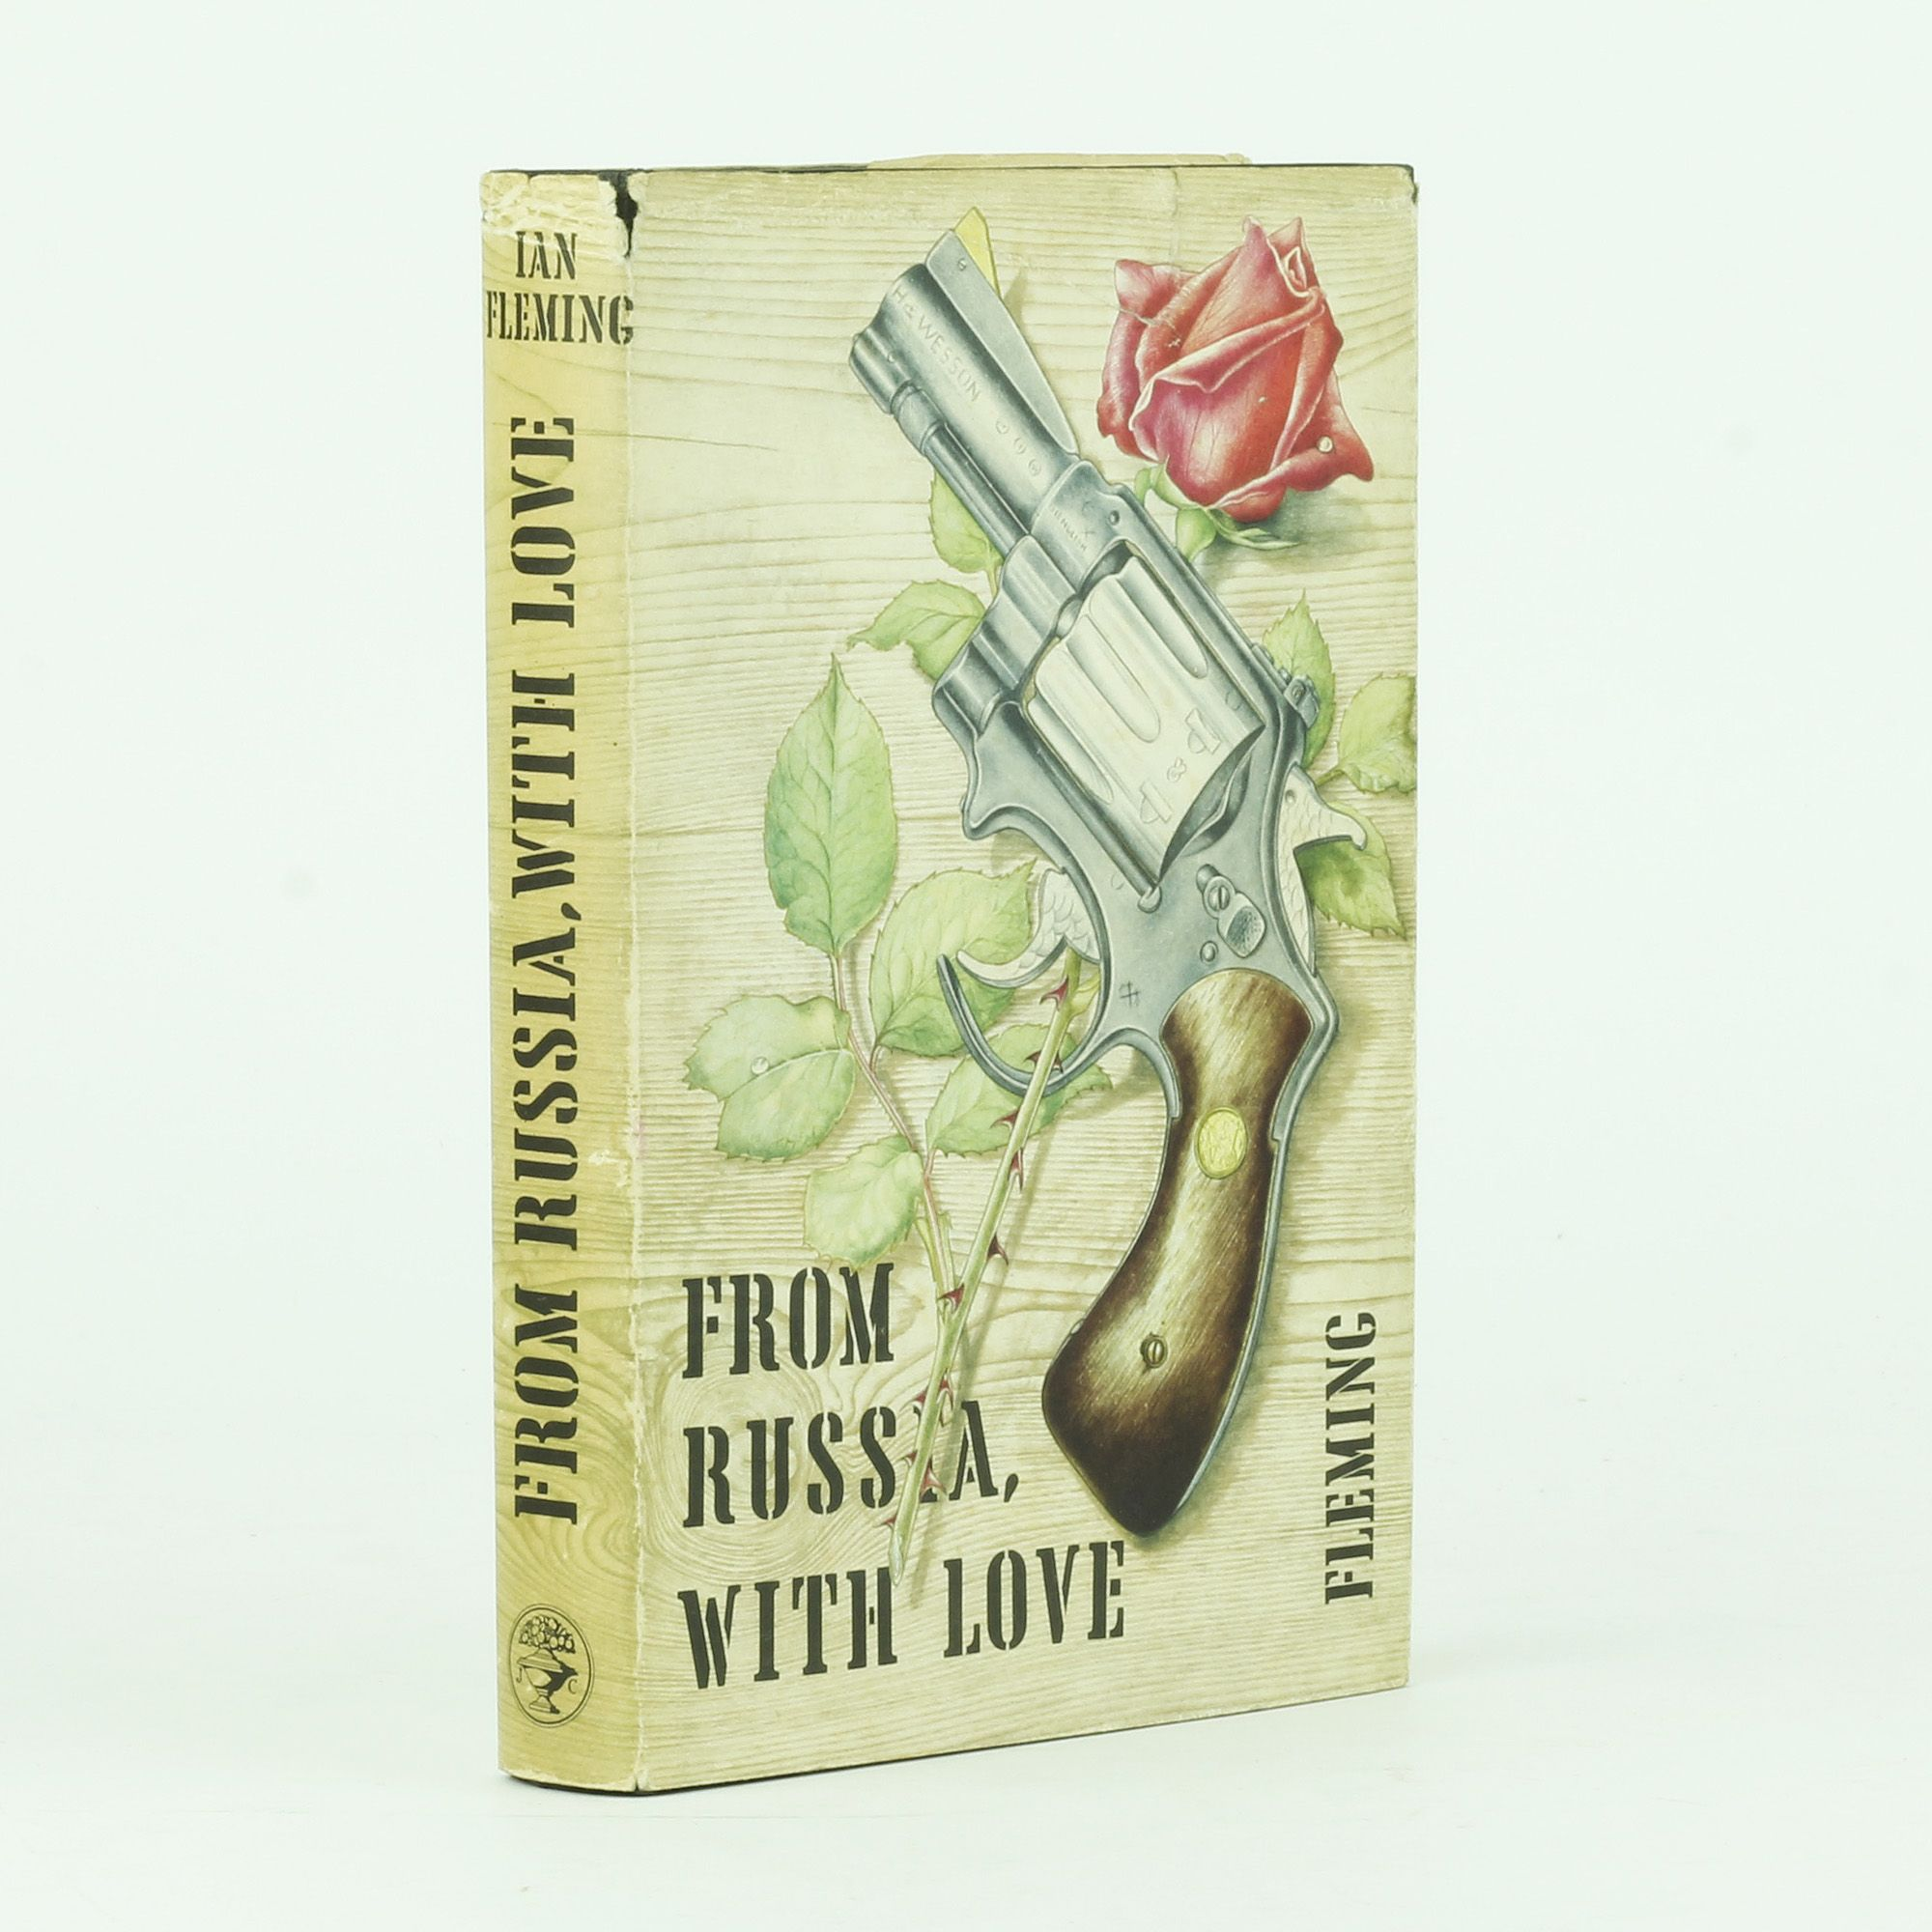 Ian Fleming, From Russia With Love, First Edition (With